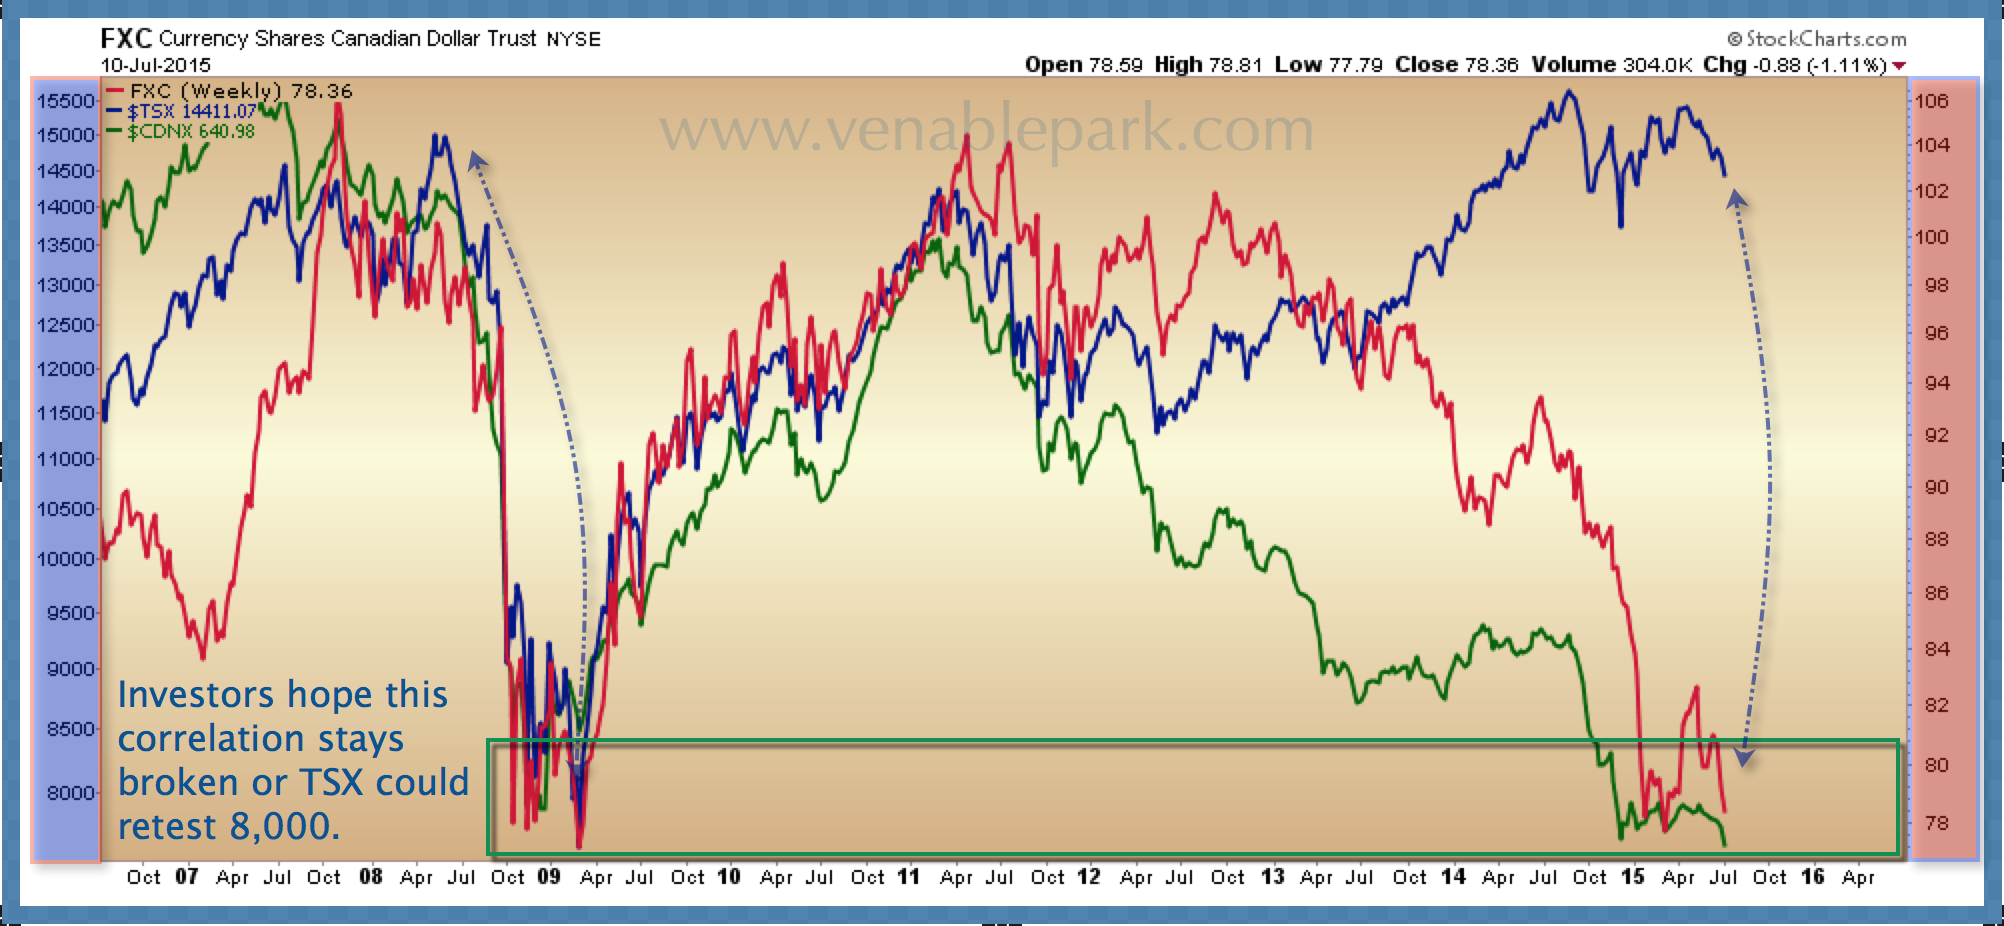 TSX, FXC and Venture